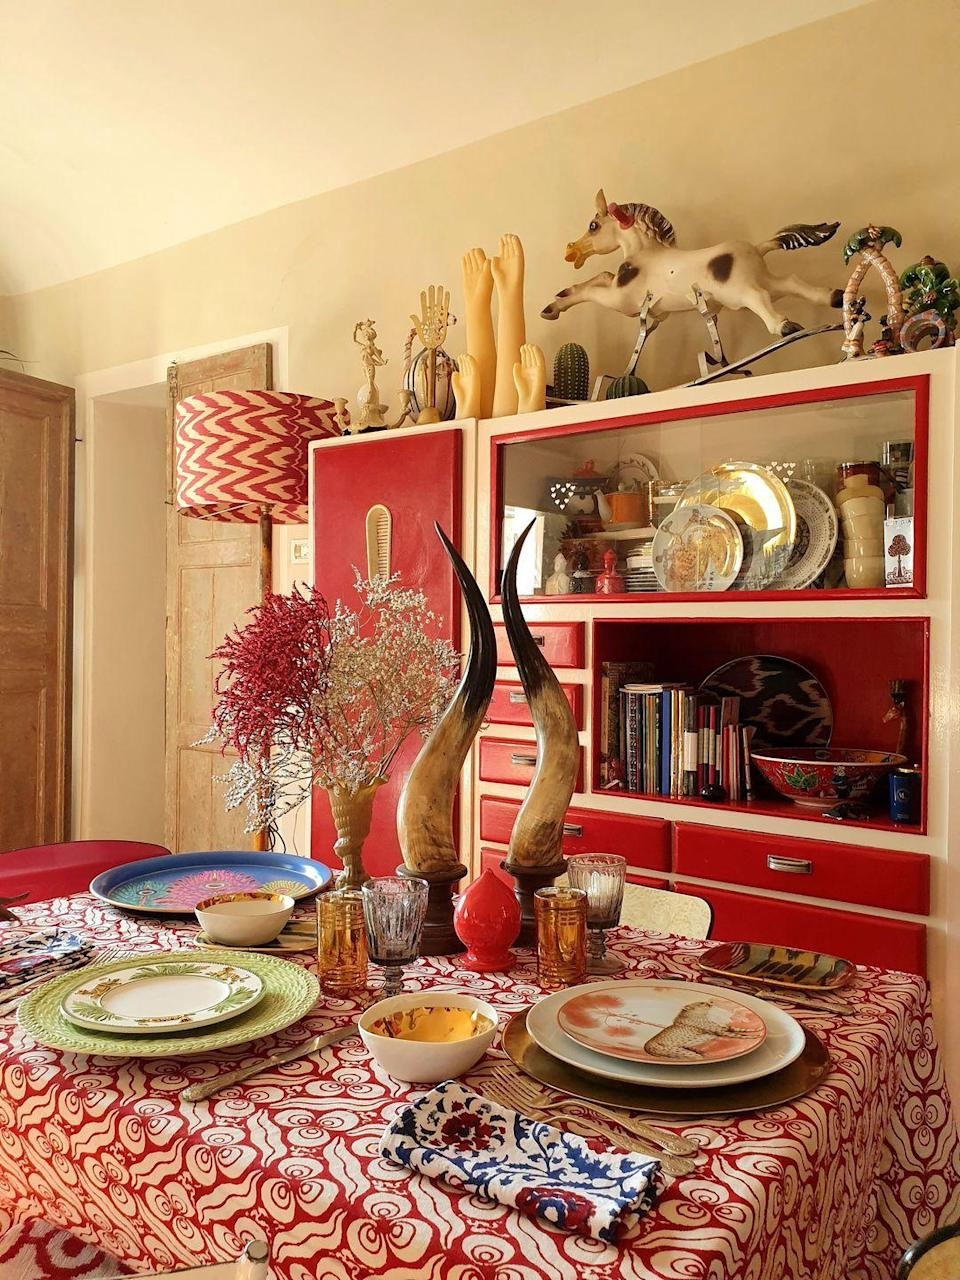 """<p>Centerpieces don't have to be large floral arrangements. Bertrando di Renzo of <a href=""""https://www.les-ottomans.com/"""" rel=""""nofollow noopener"""" target=""""_blank"""" data-ylk=""""slk:Les Ottomans"""" class=""""link rapid-noclick-resp"""">Les Ottomans</a> creates a stunning fall tablescape using dried flowers and antique horns for a gorgeously eclectic centerpiece. </p>"""